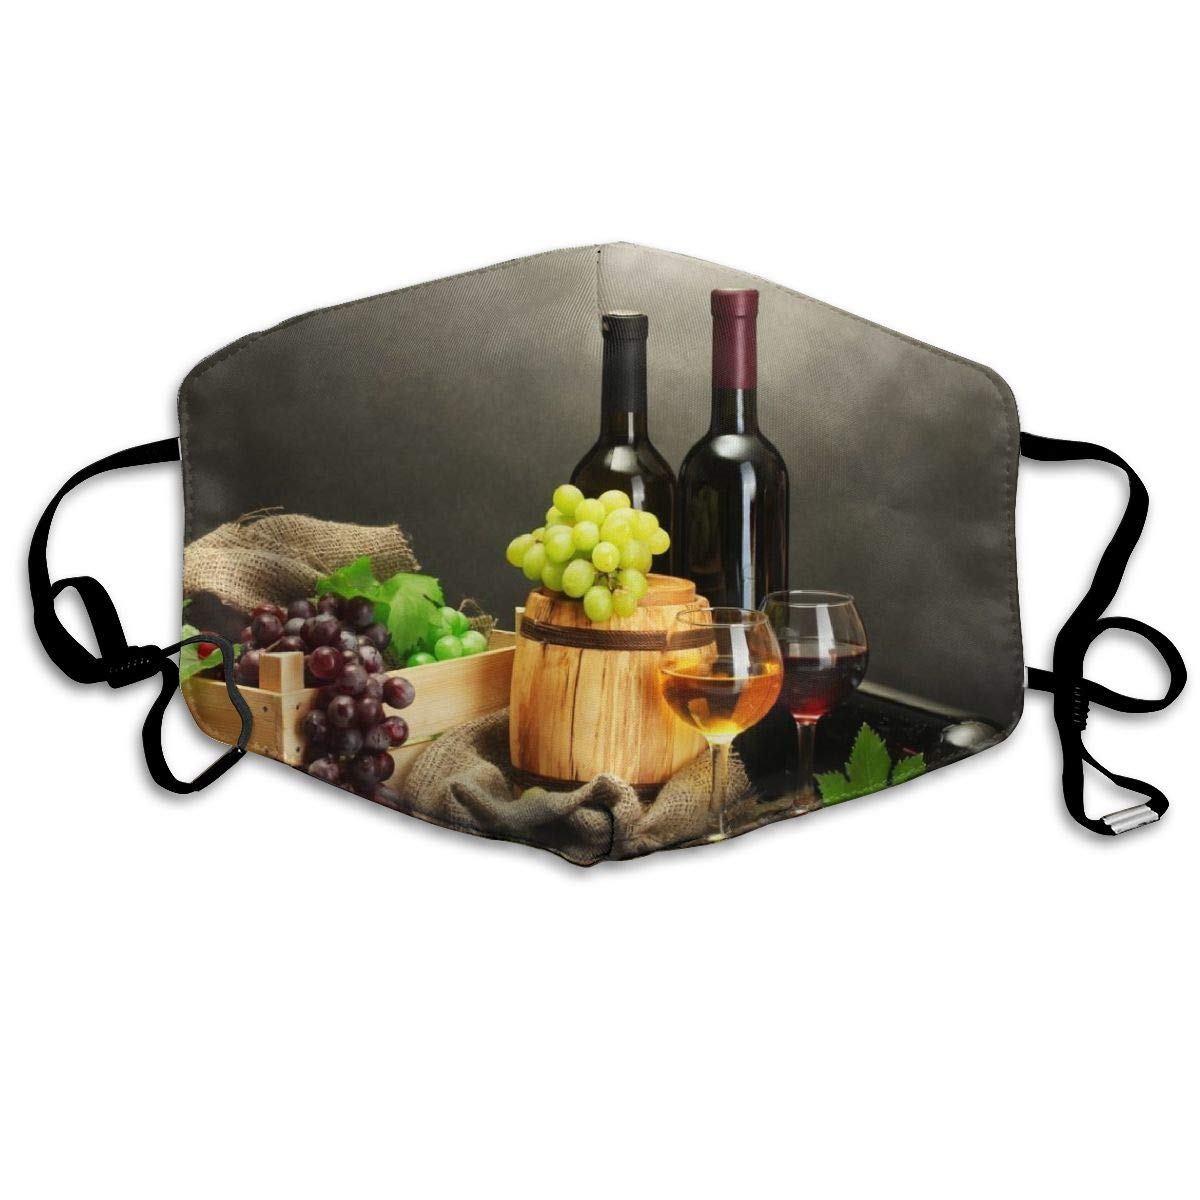 Mouth Mask Winery Barrel And Wine Print Masks - Breathable Adjustable Windproof Mouth-Muffle, Camping Running For Women And Men